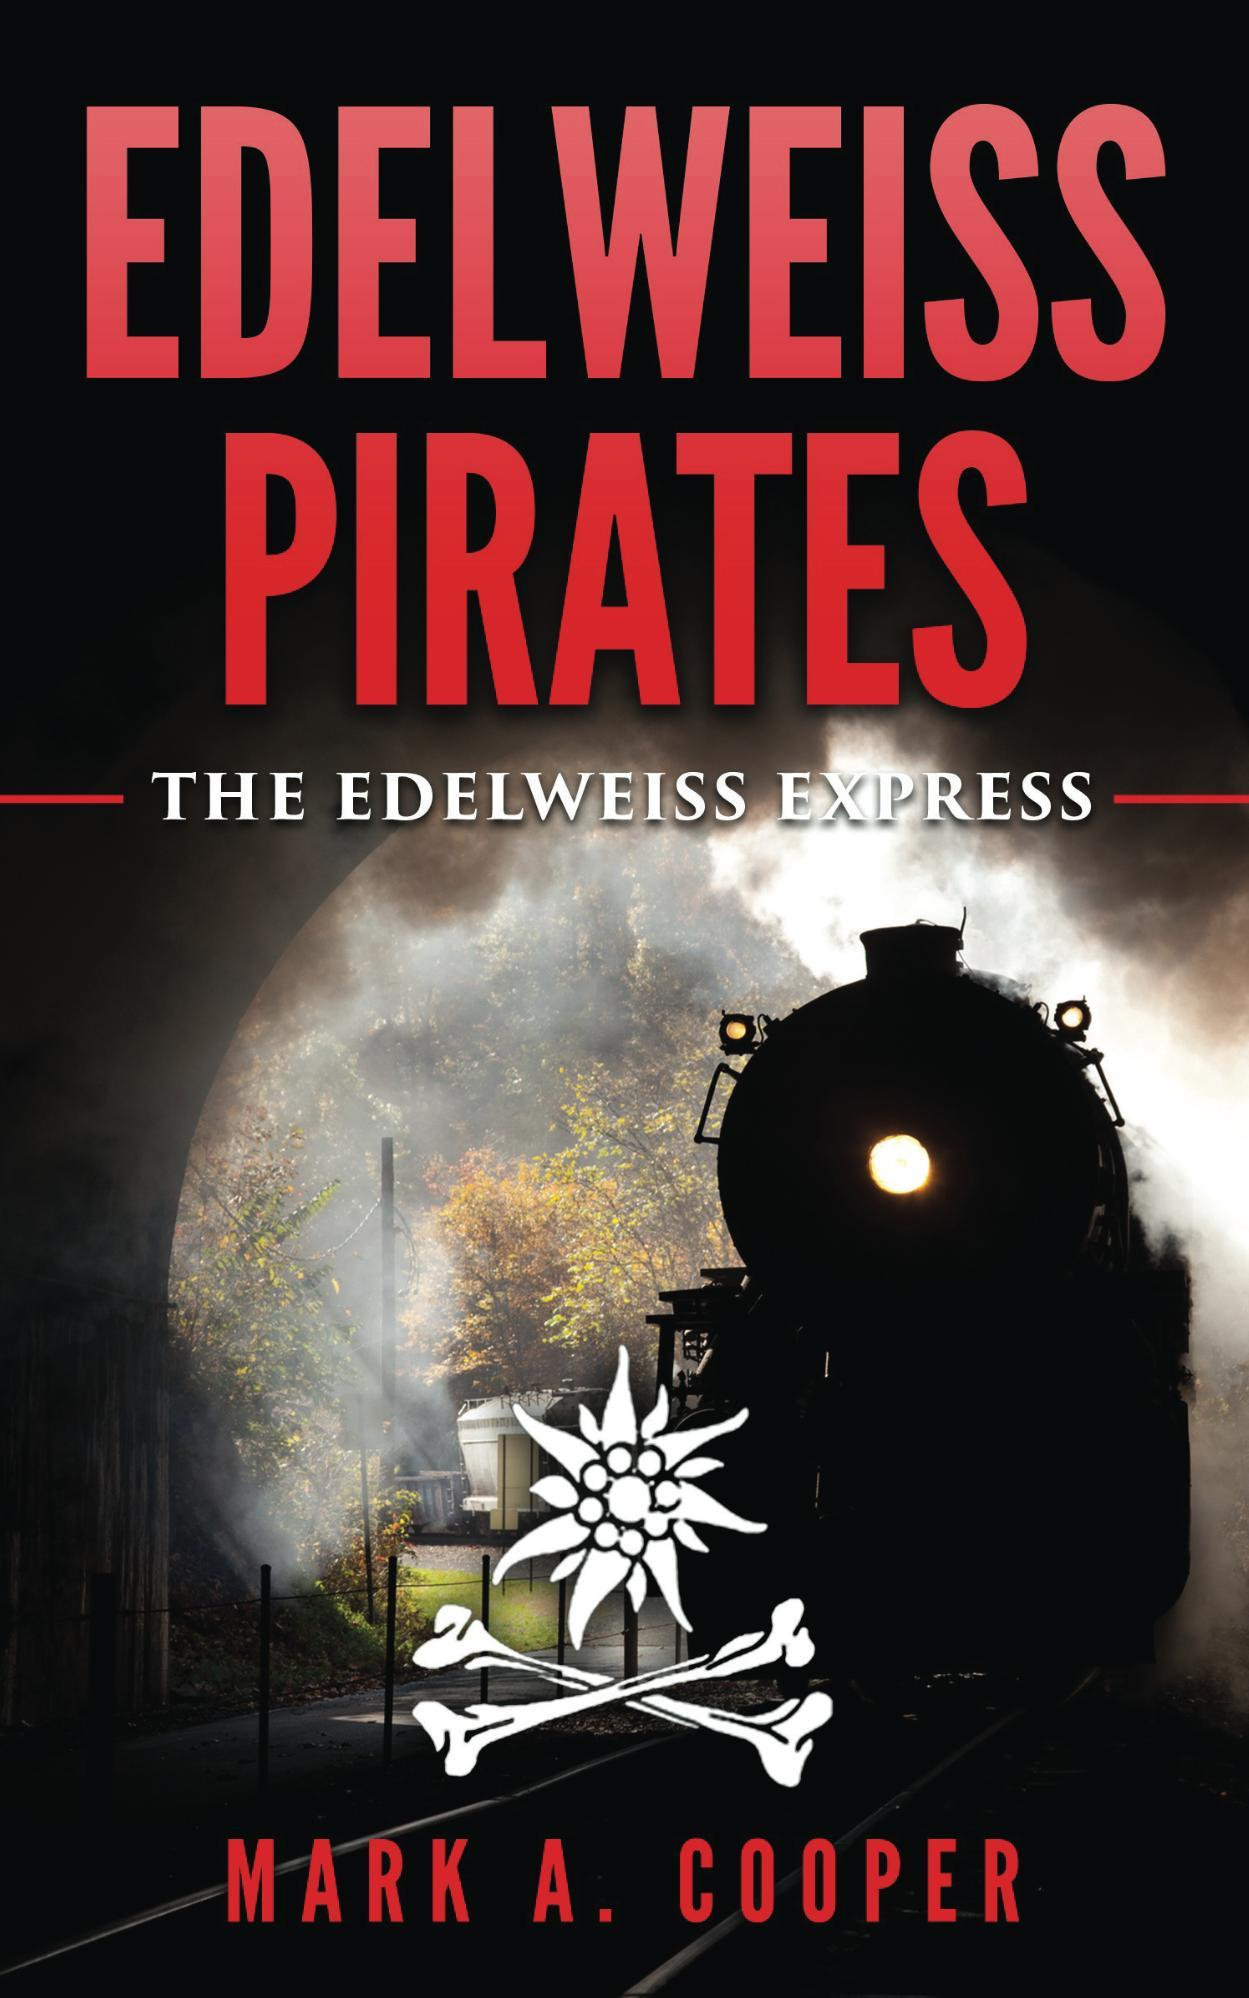 The Edelweiss Express (Edelweiss Pirates #2)